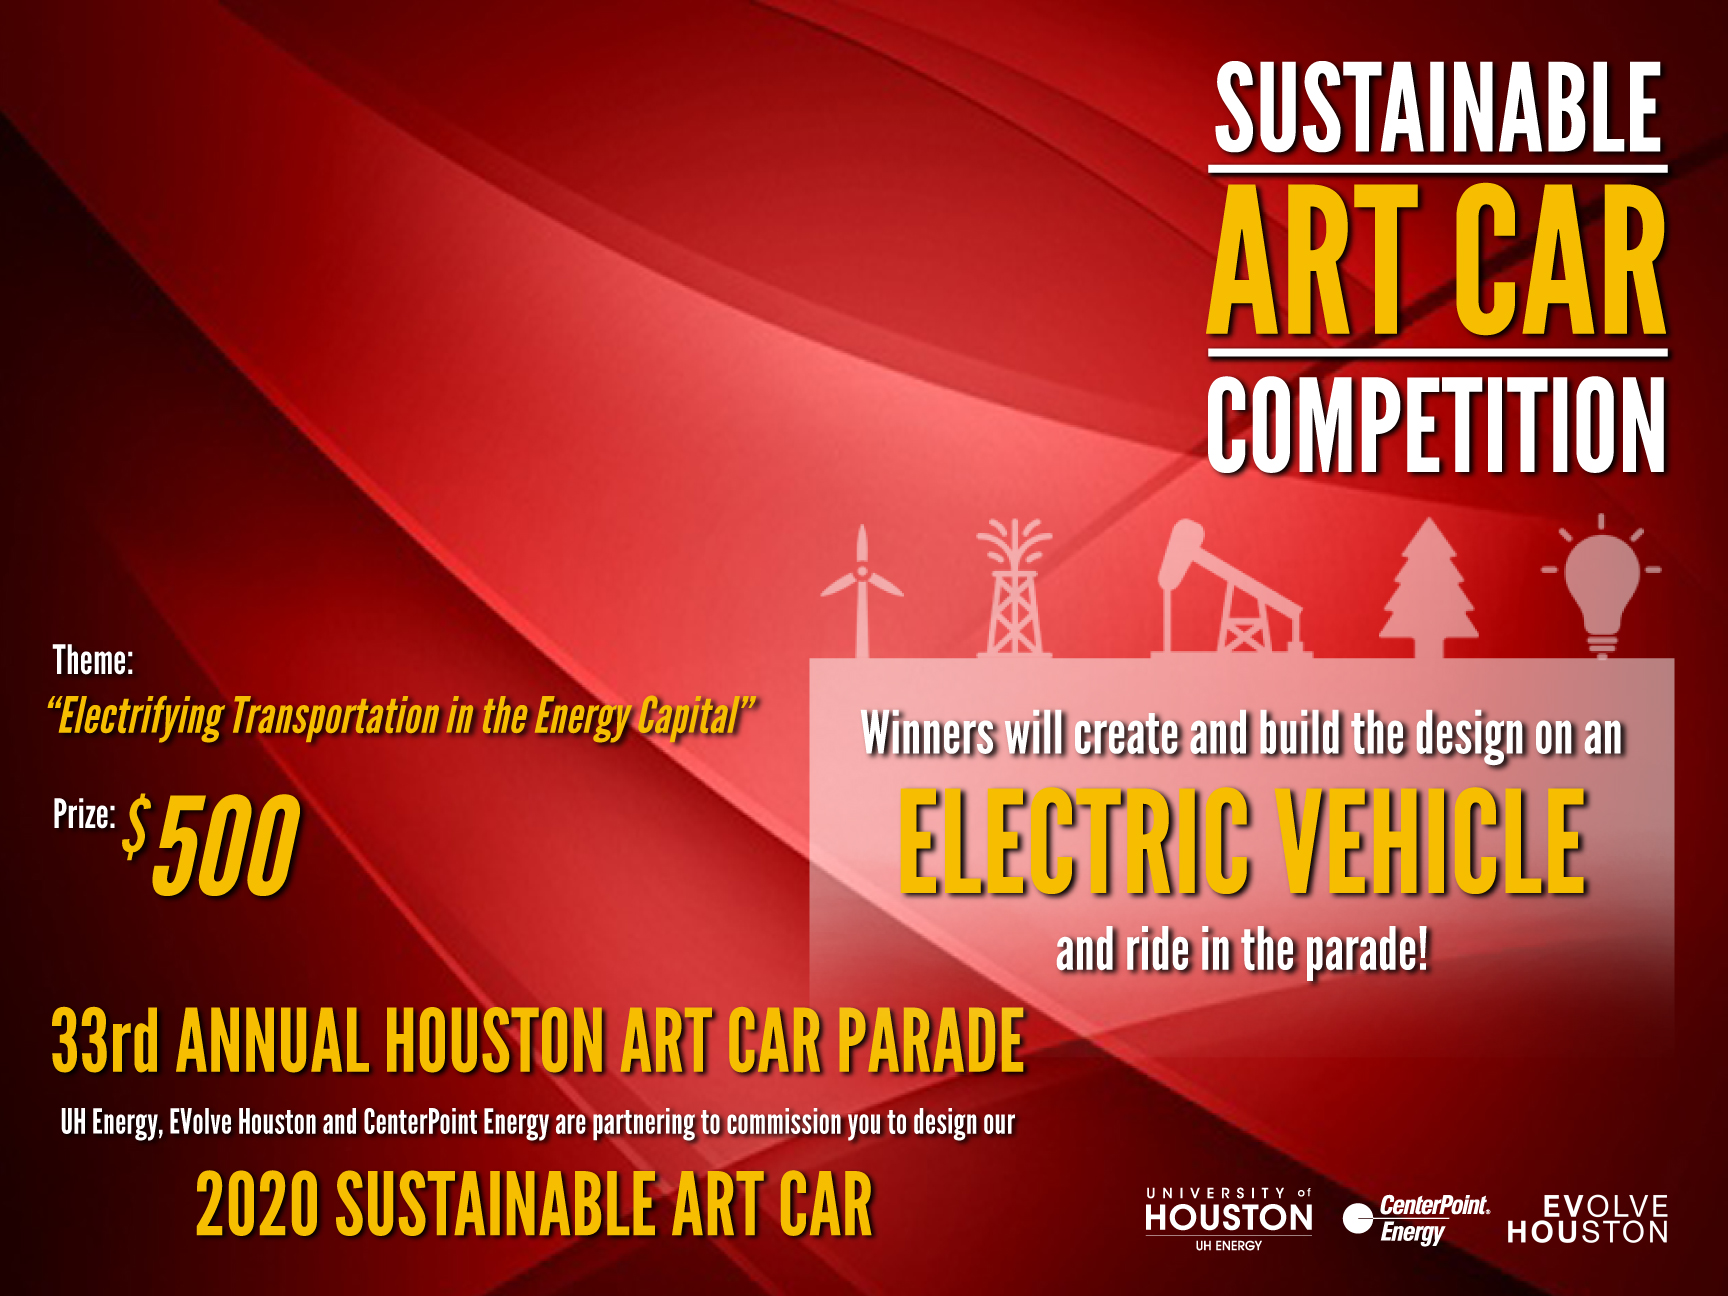 2020 Sustainable Art Car Competition